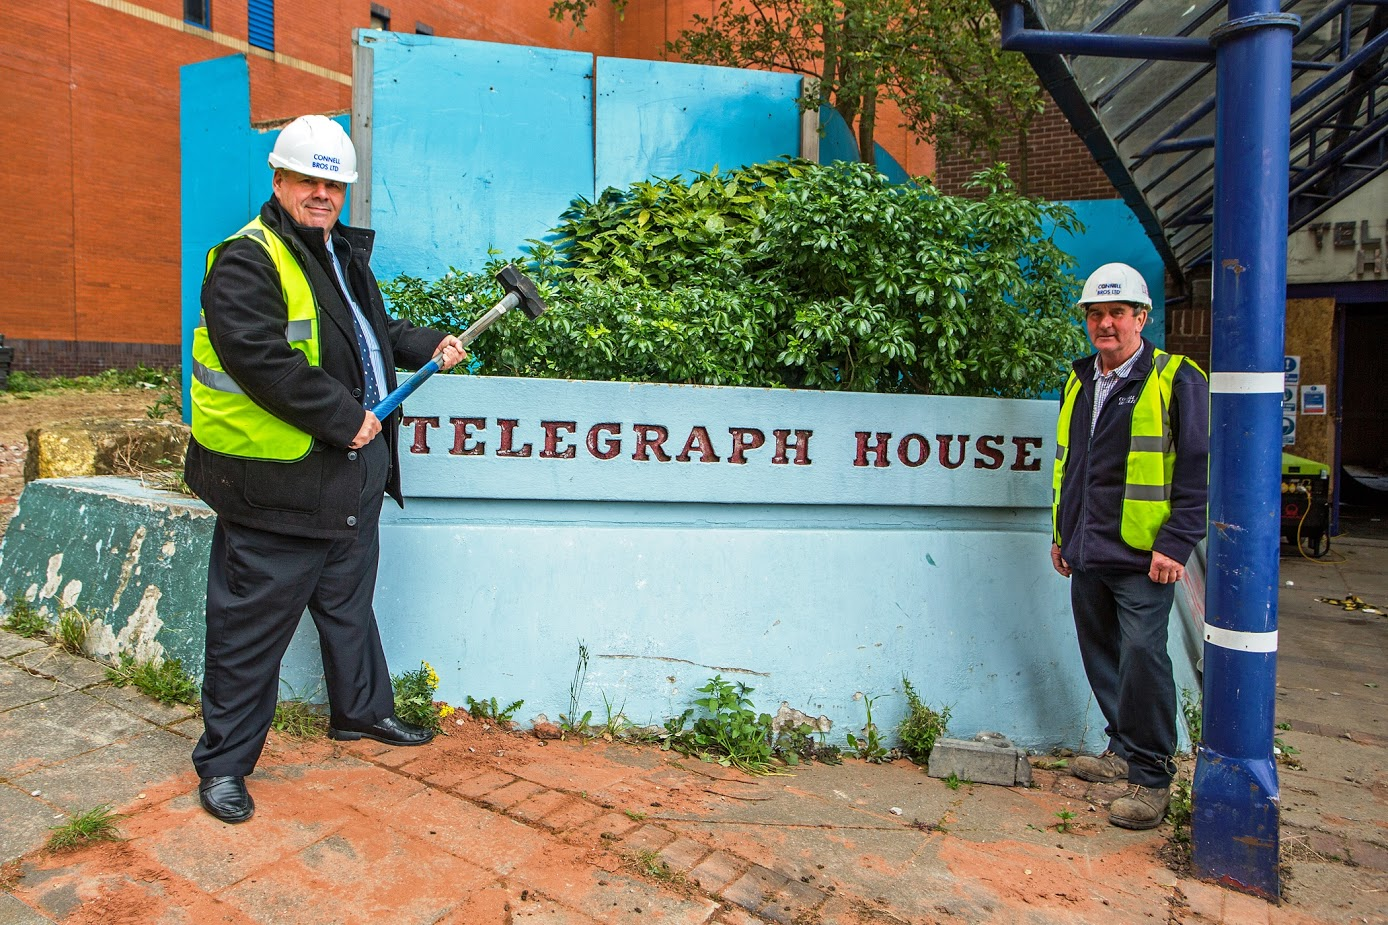 Image: Last post for Telegraph House